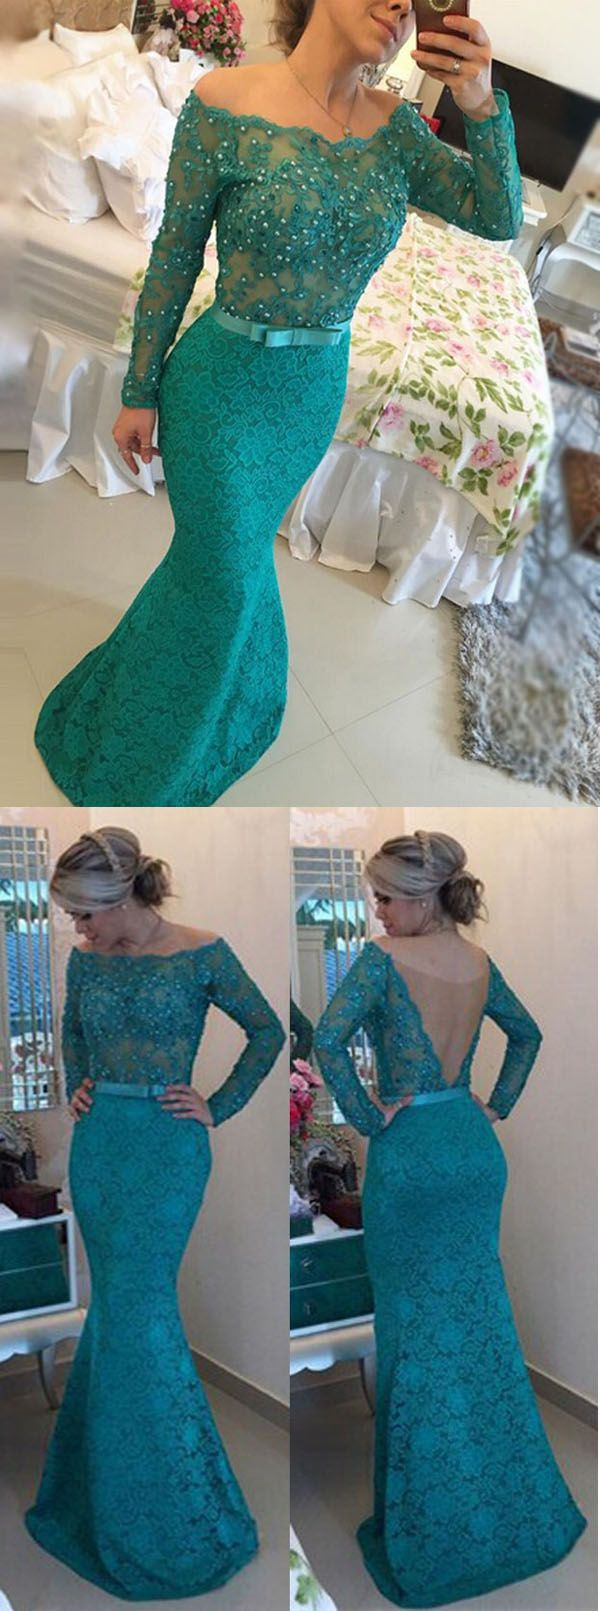 best vestidos images on pinterest long prom dresses classy